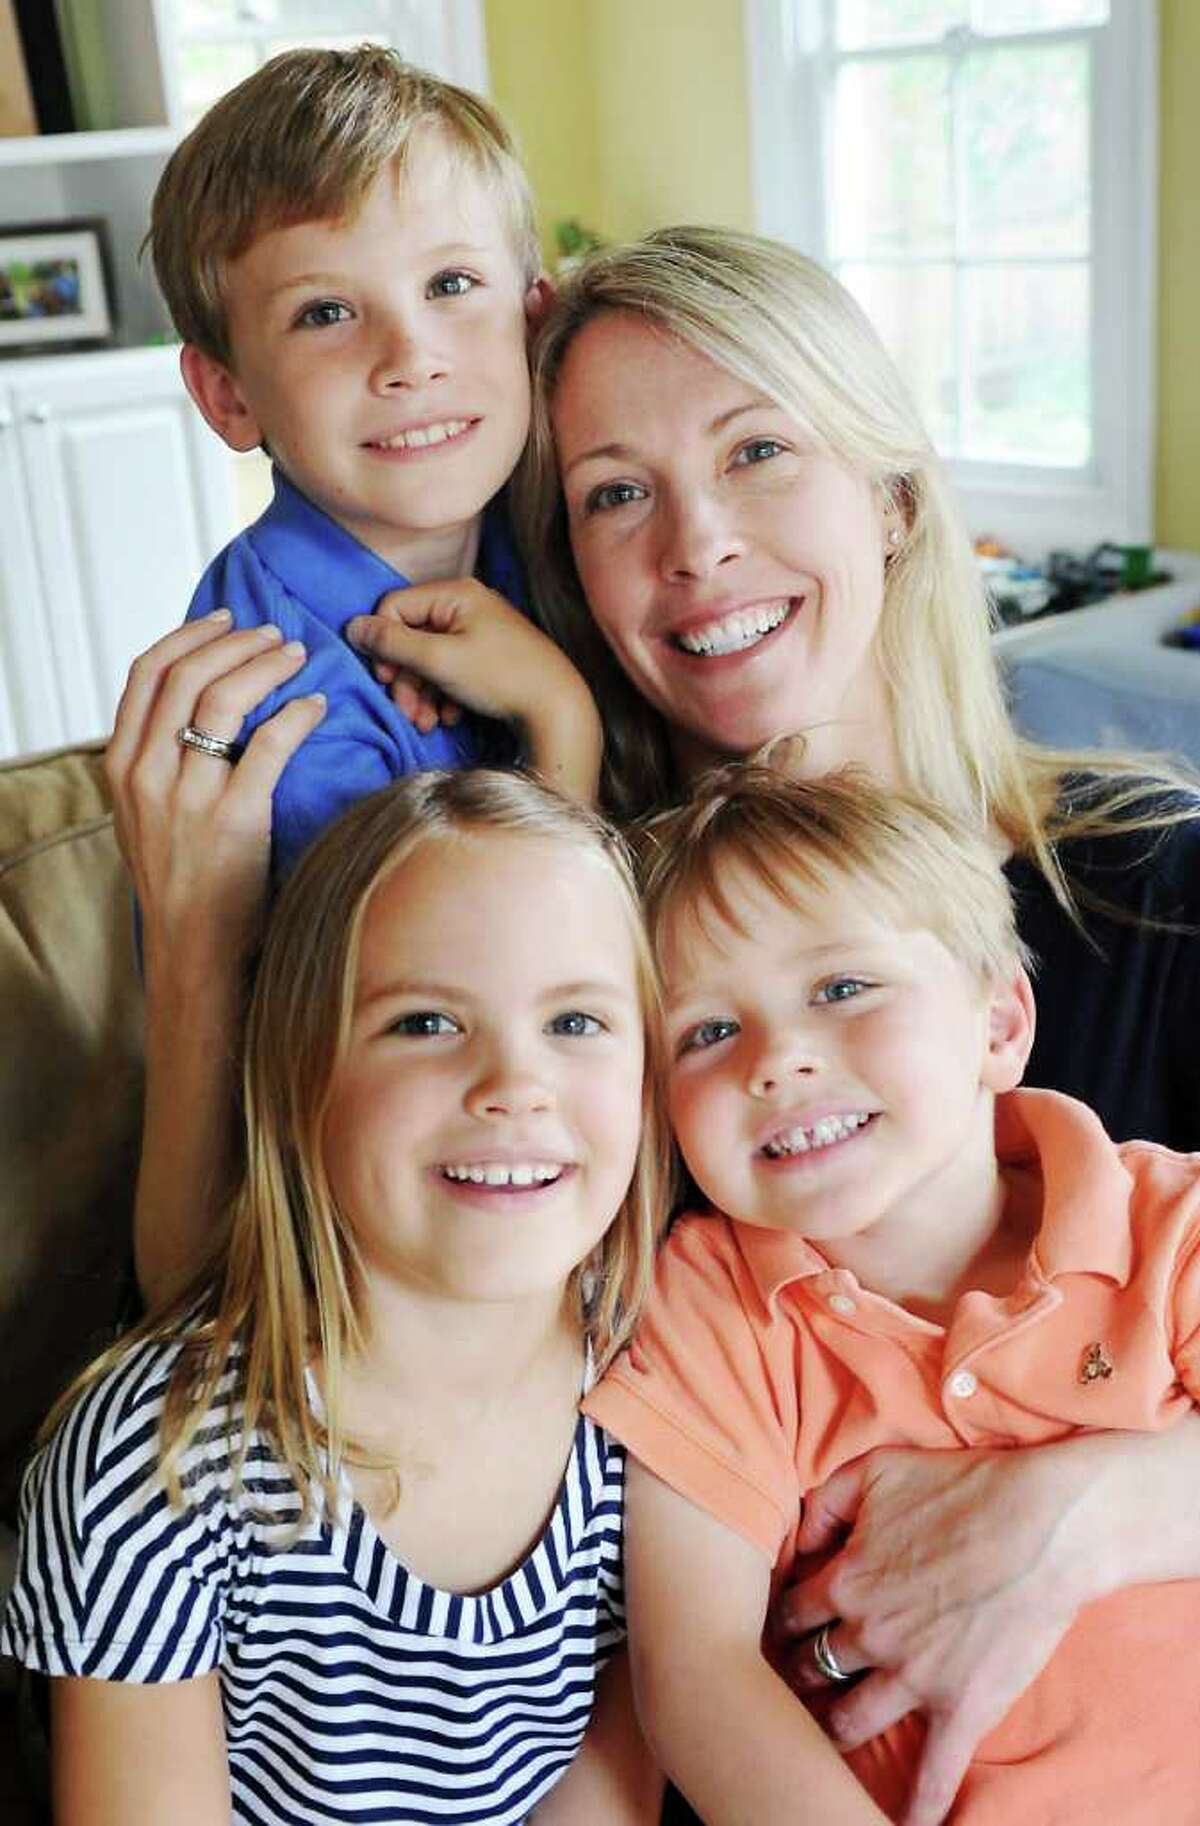 Erin O'Toole is the new program manager for Hope in Motion, where 100% of the donations raised support services at the Bennett Cancer Center: . She sits with her children Sean O'Toole, 9, Bridget O'Toole, 7, and Ryan O'Toole, 4, in their family room in Darien, Conn. on Tuesday May 24, 2011. Four and a half years ago, O'Toole lost her husband John O'Toole to brain cancer, and as a teenager growing up in Hunter Mountain,N.Y. she lost her mother Maureen Gallagher to breast cancer.